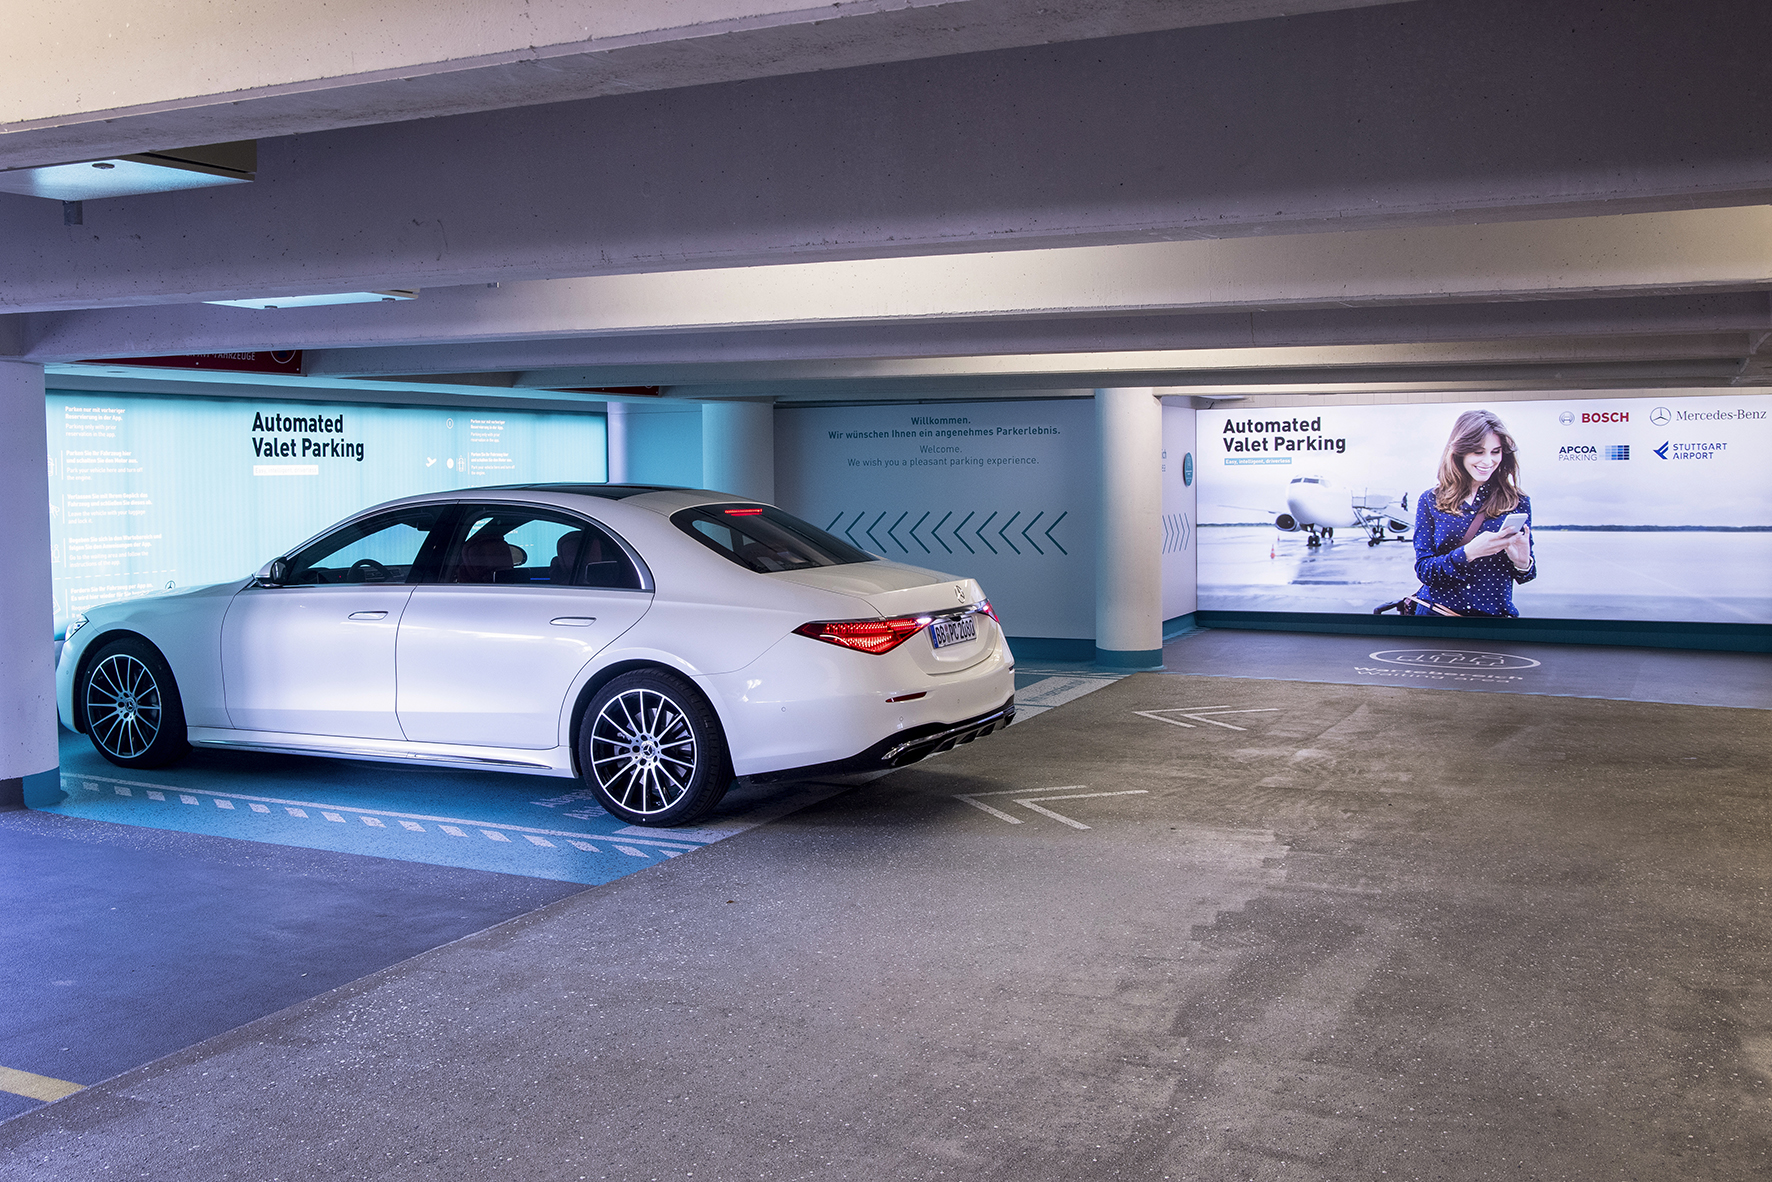 Apcoa, Bosch, and Mercedes-Benz are working to provide the world's first commercial automated valet parking (AVP) service at Stuttgart airport